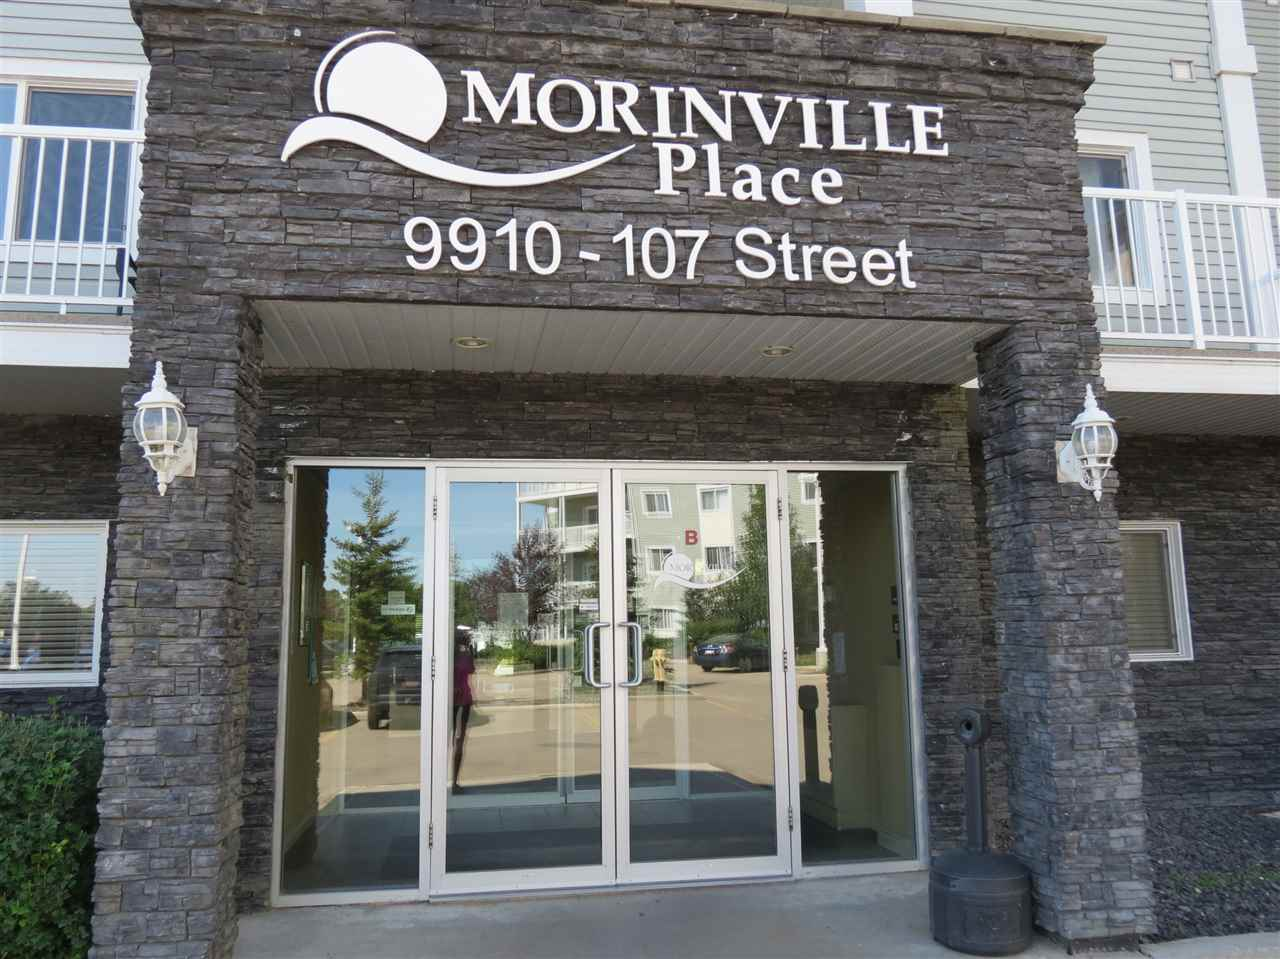 Main Photo: 106 9910 107 Street: Morinville Condo for sale : MLS® # E4073141